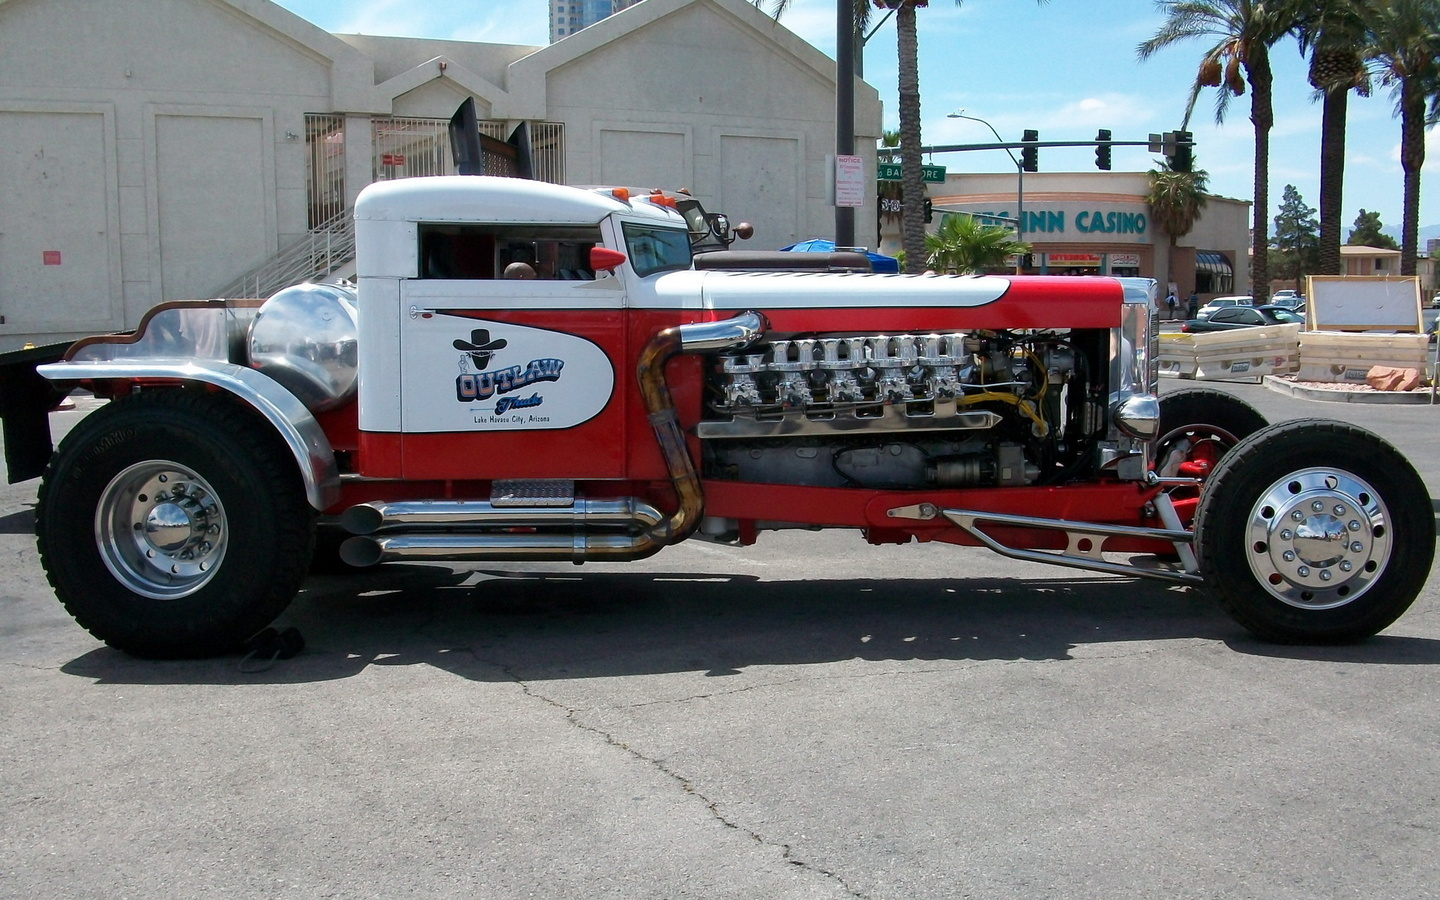 peterbilt, red, white, car, truck, truck wheels and tyres, truck v10 engine